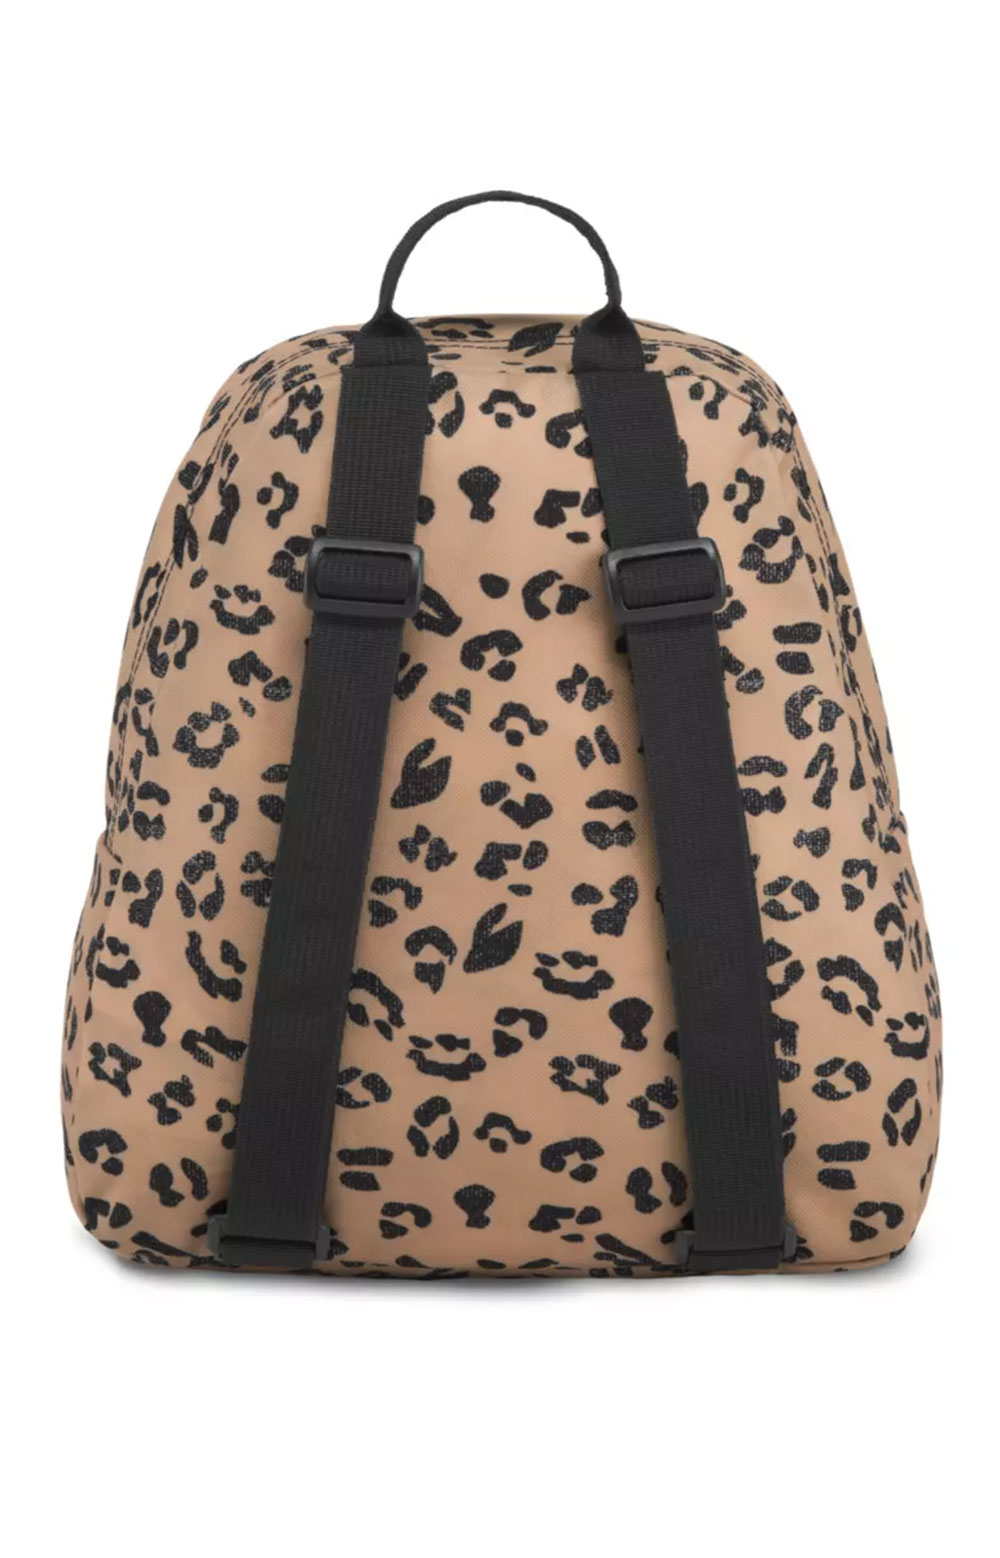 Half Pint Mini Backpack - Show Your Spots 2